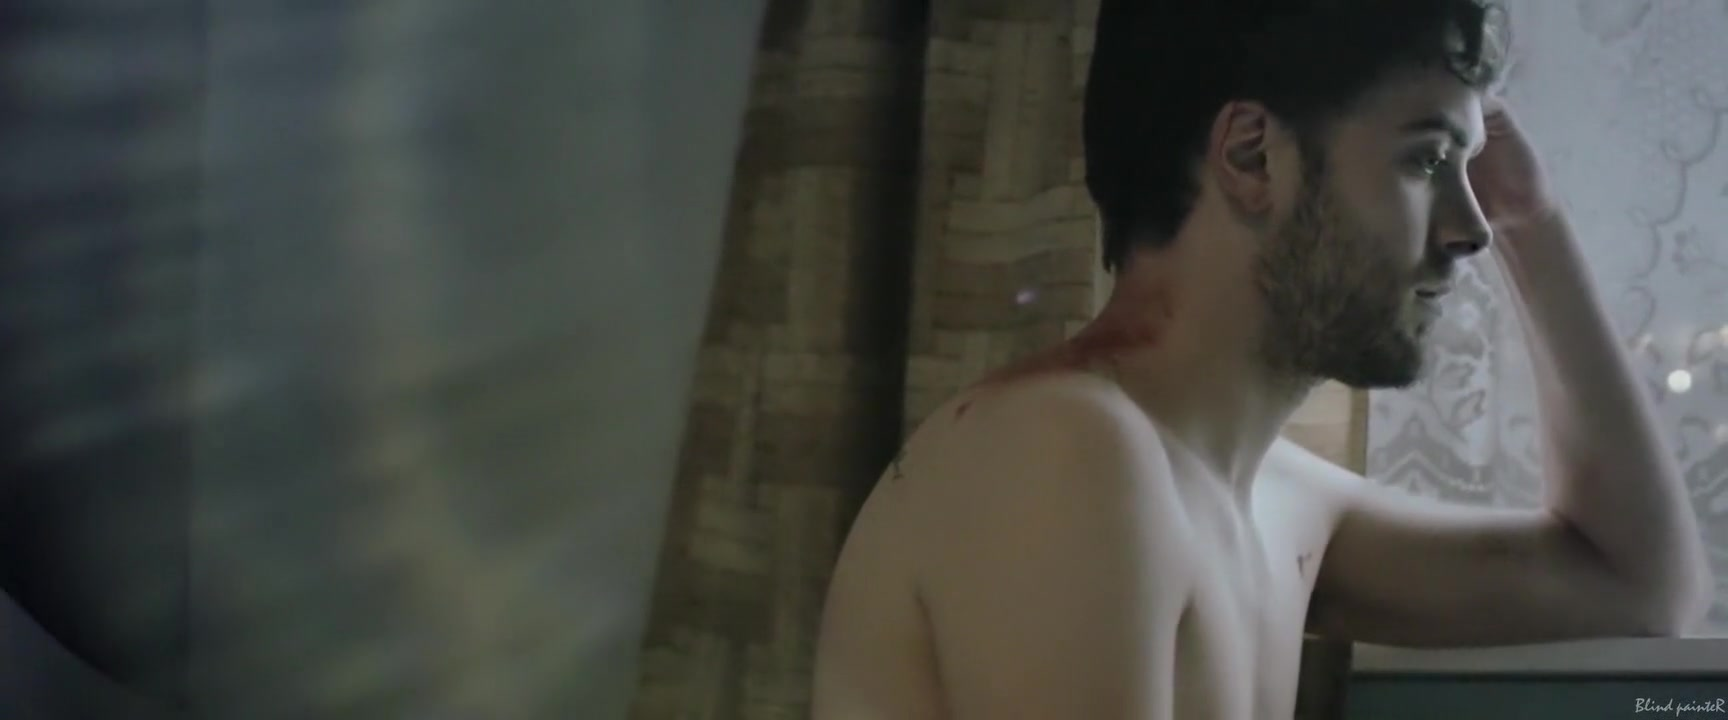 Katrina kaif sexy xxx video Excellent porn